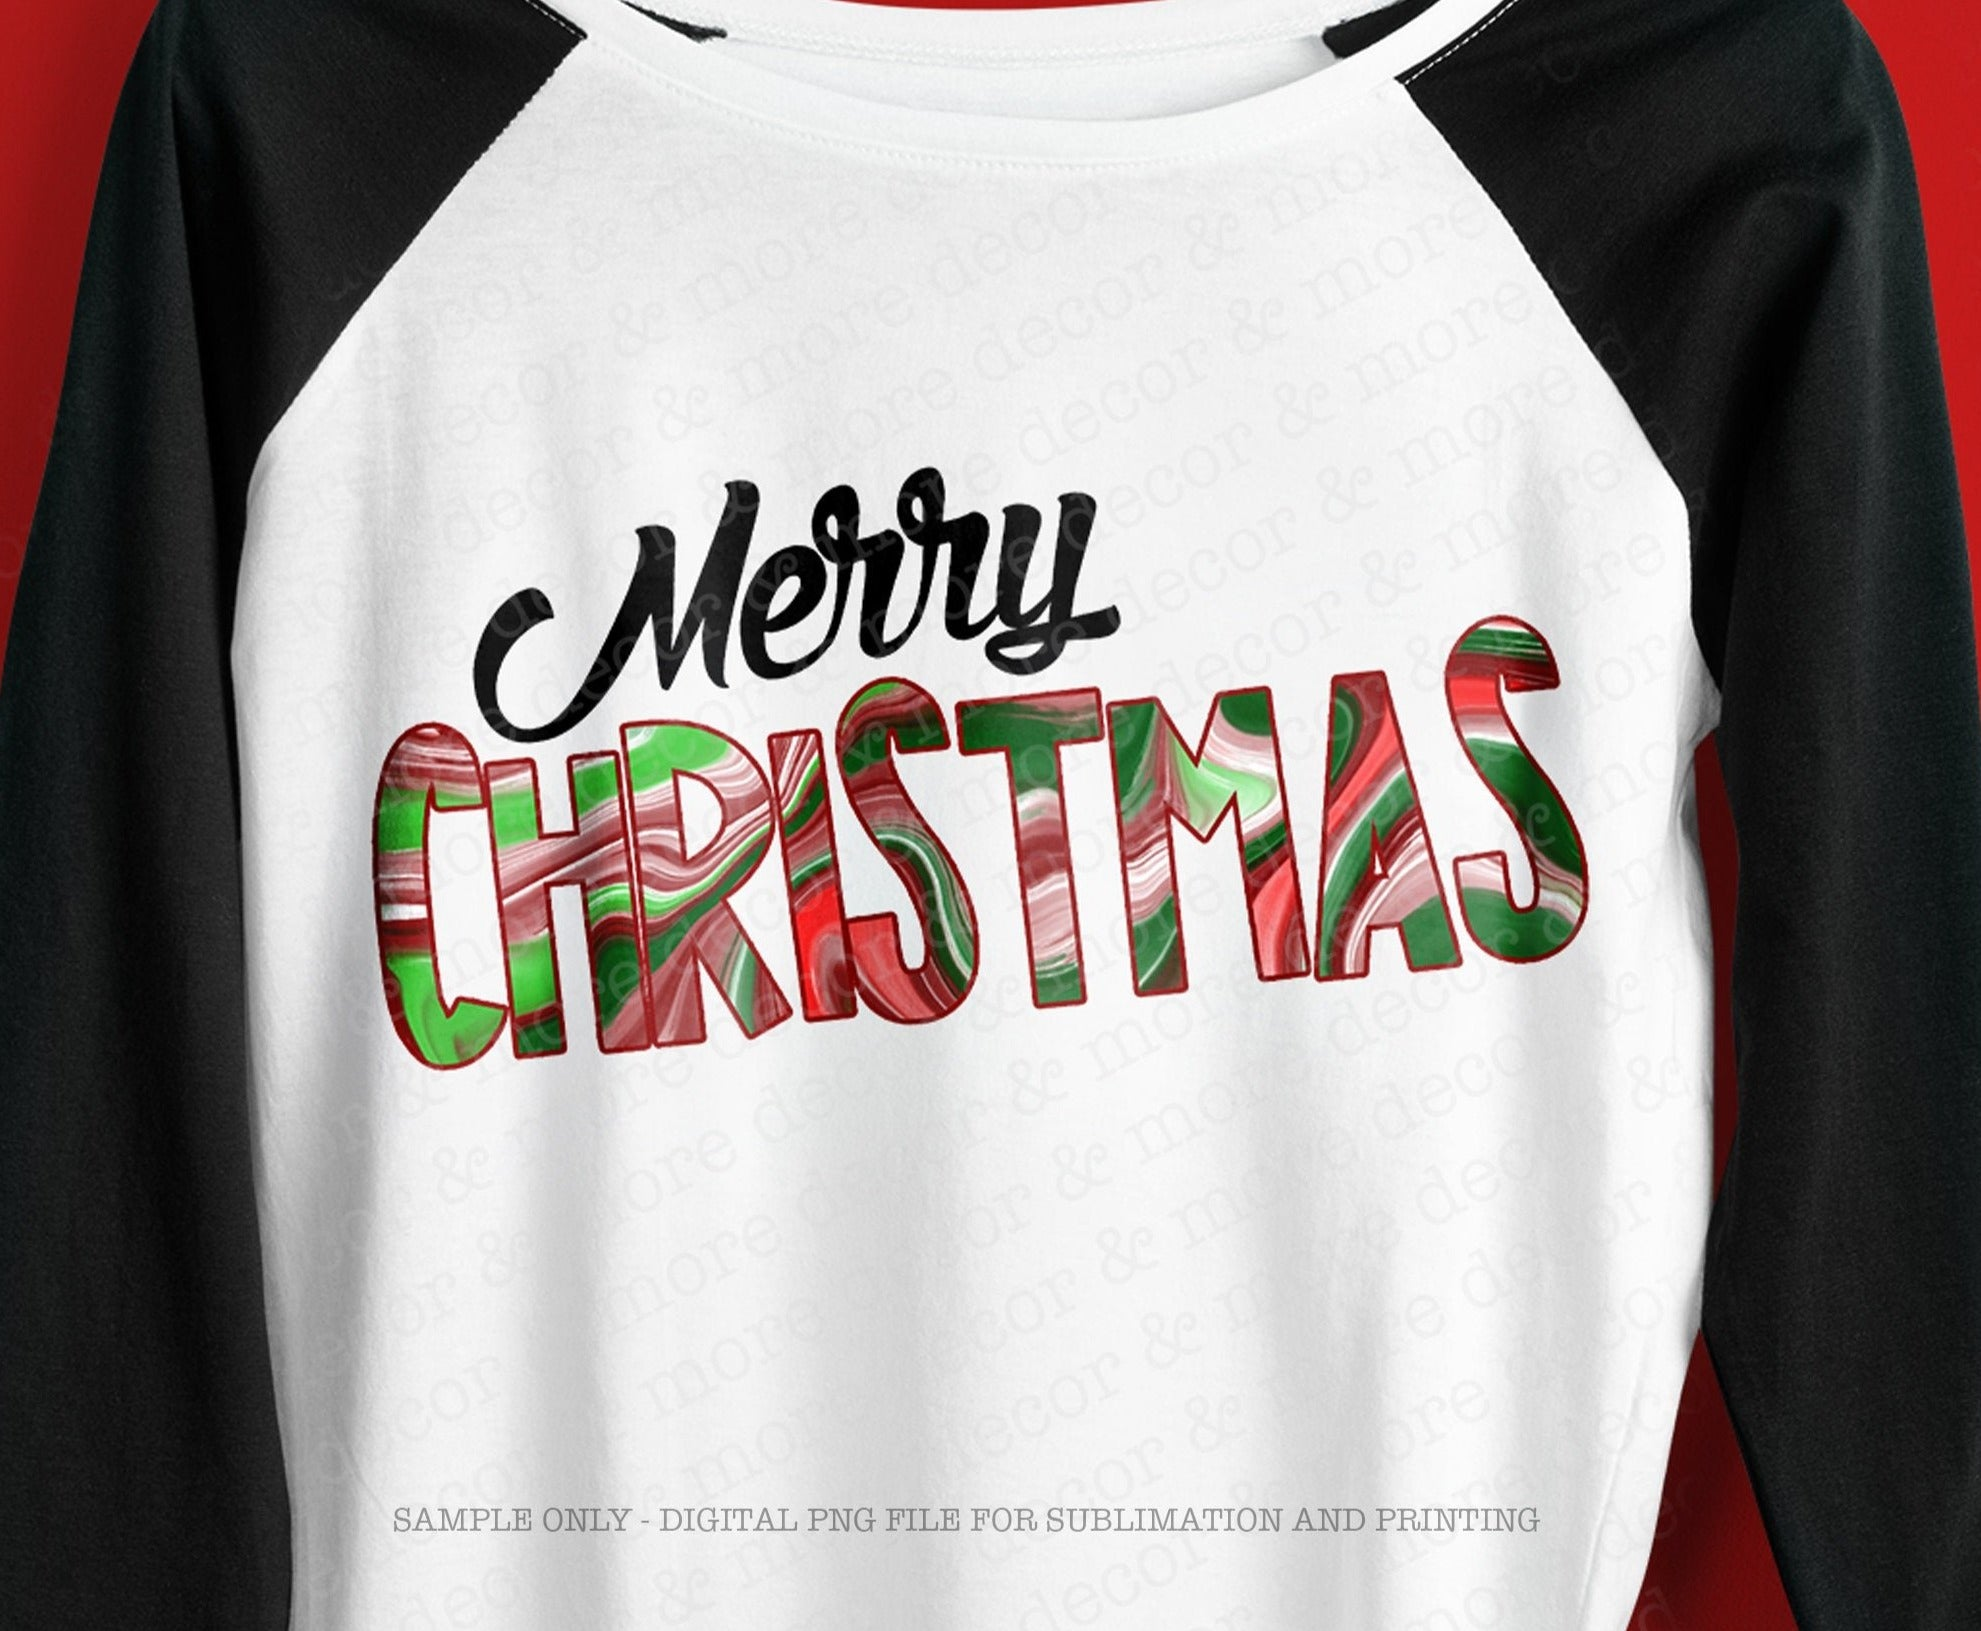 SUBLIMATION DIGITAL DOWNLOAD Merry Christmas, Swirly Red and Green Christmas Sublimation Design, Sublimation Png Design for Christmas Shirt